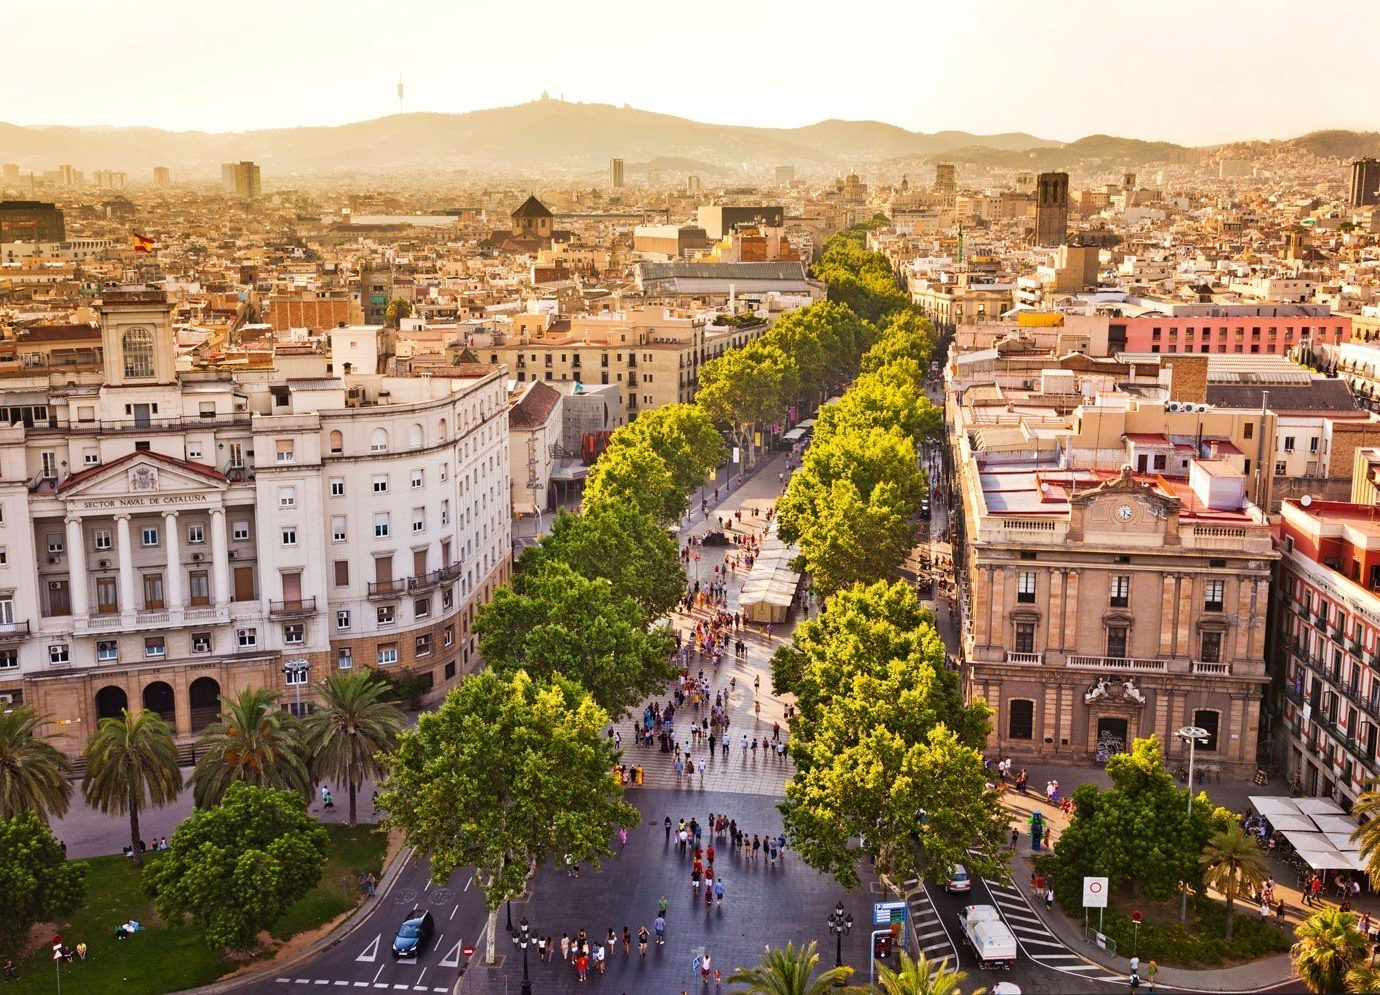 Trip Ideas sky outdoor Town geographical feature historic site landmark City human settlement cityscape neighbourhood plaza ancient rome tourism town square ancient history palace panorama